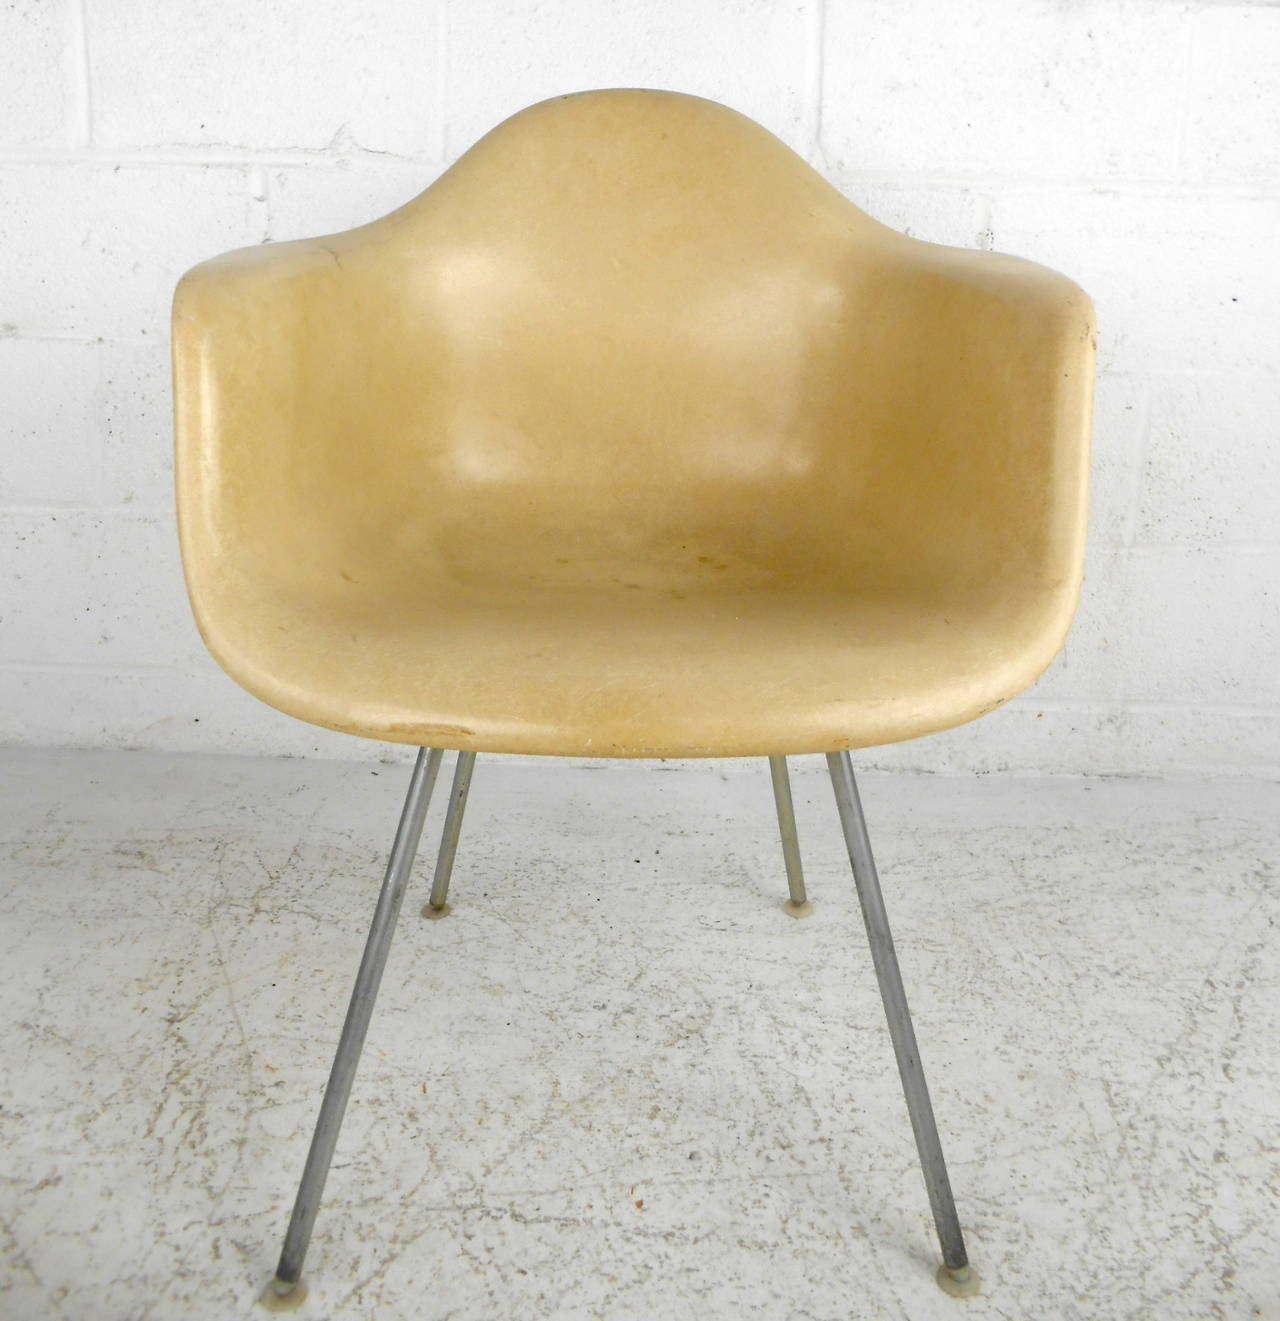 eames chair herman miller zero gravity lounge mid century modern fiberglass shell by for this was designed charles and ray